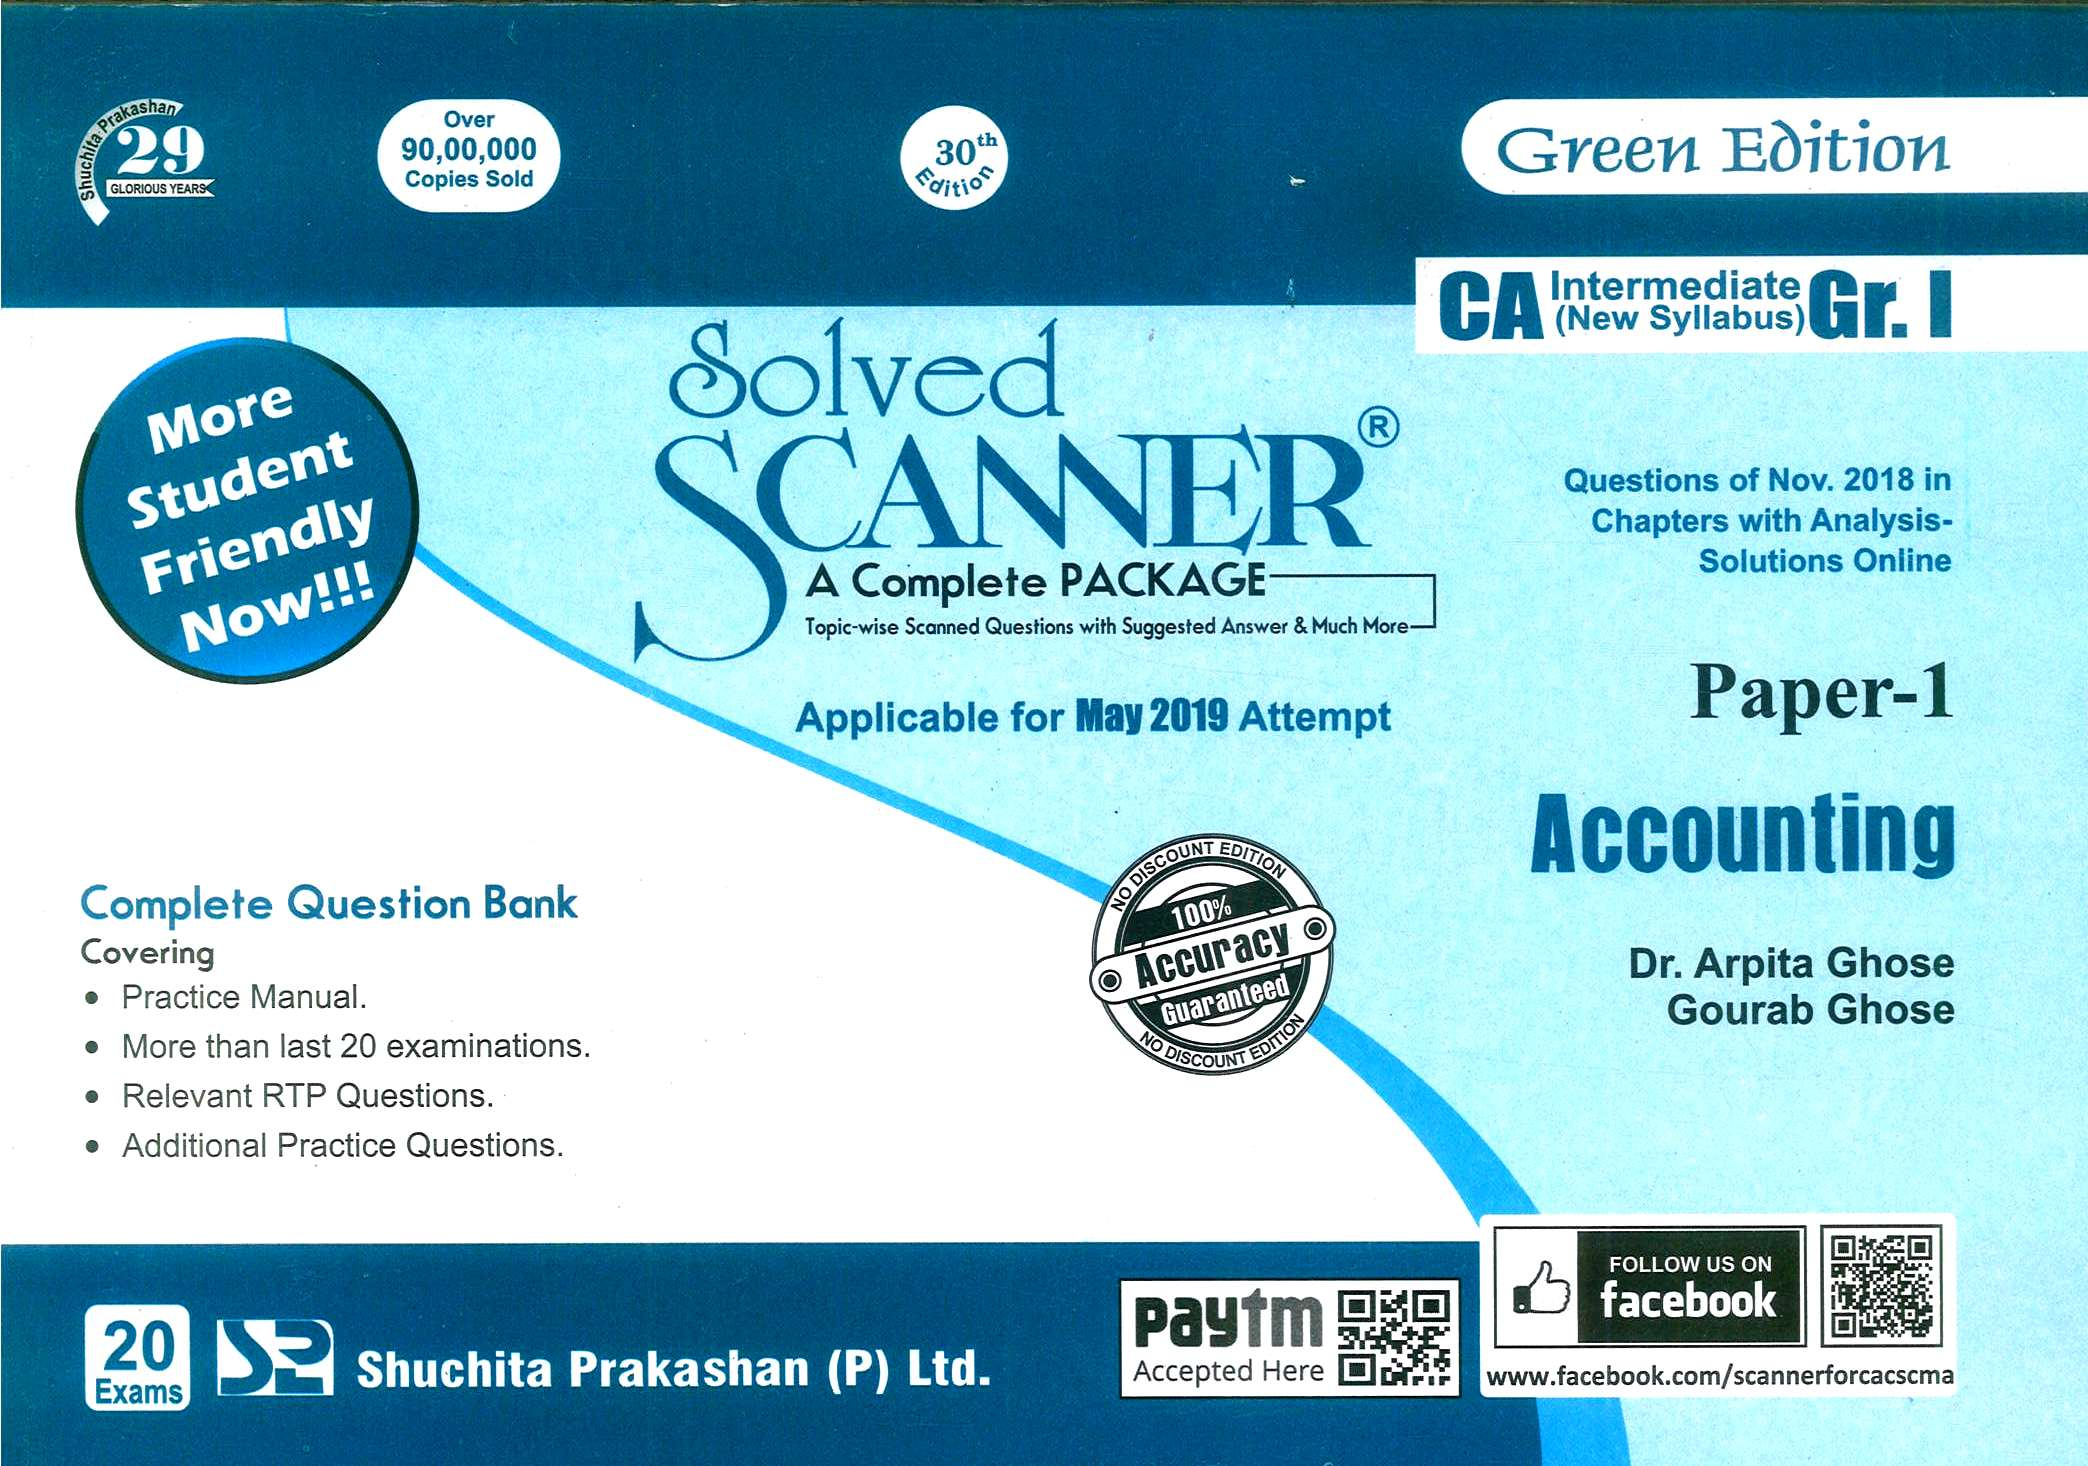 Shuchita Solved Scanner of Accounting CA Inter Group-I Paper 1 for May 2019 (New Syllabus) Exam for  Green Edition by Dr. Arpita Ghose and Gourab Ghose (Shuchita Prakashan) Edition 2019